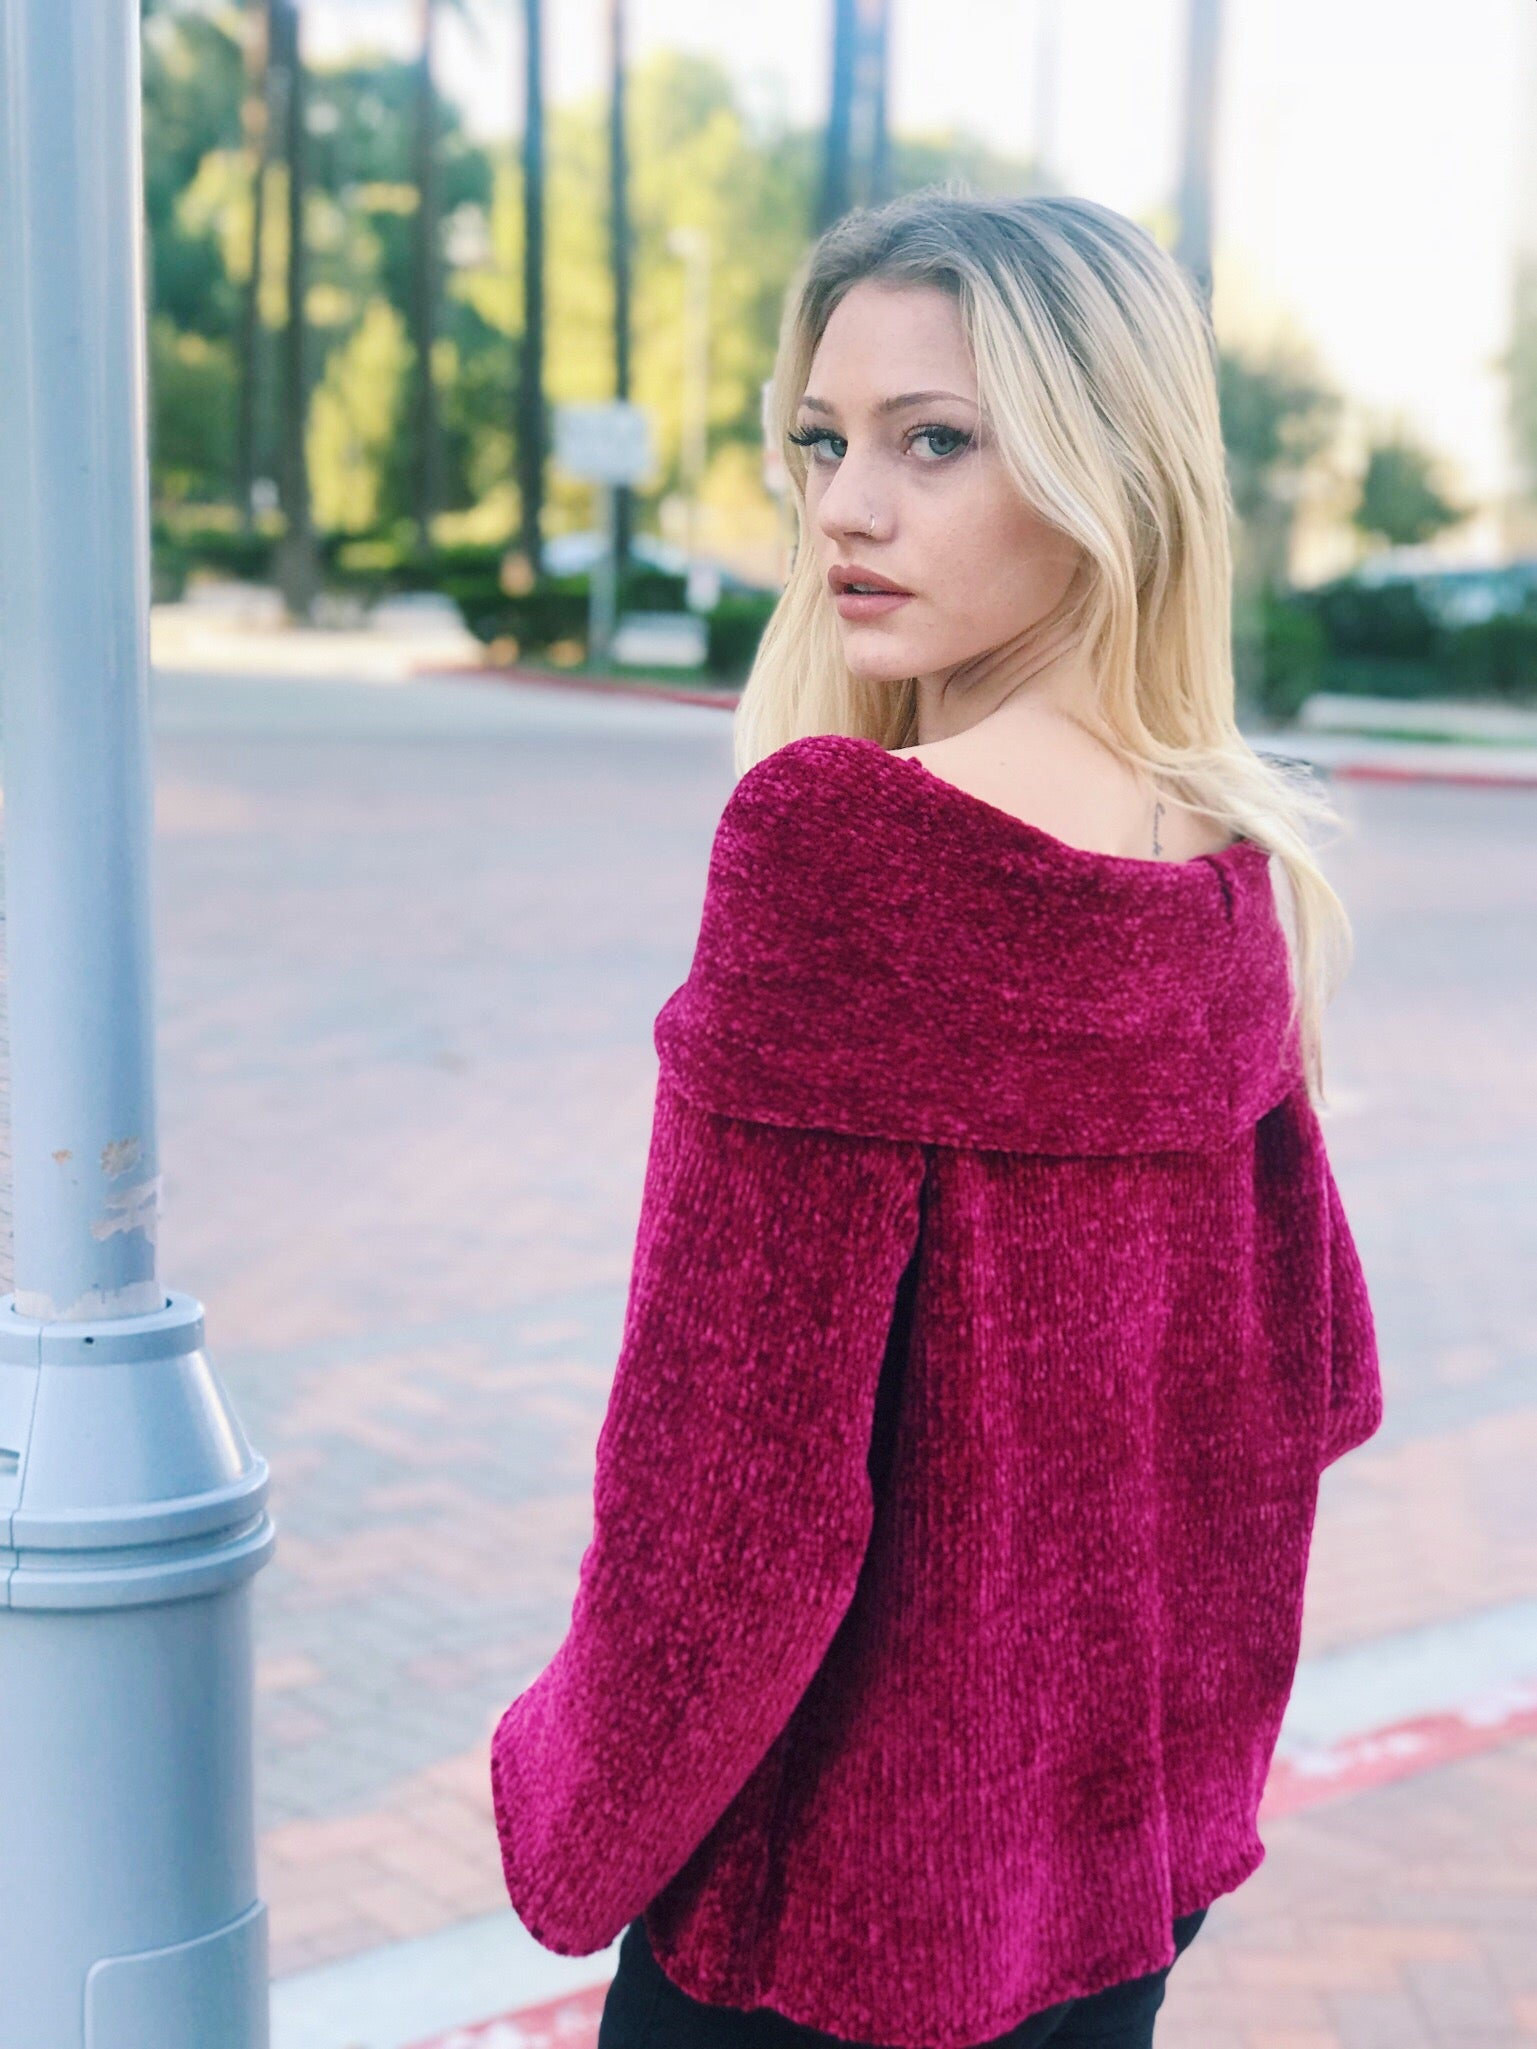 The Tori Off The Shoulder Knit Sweater